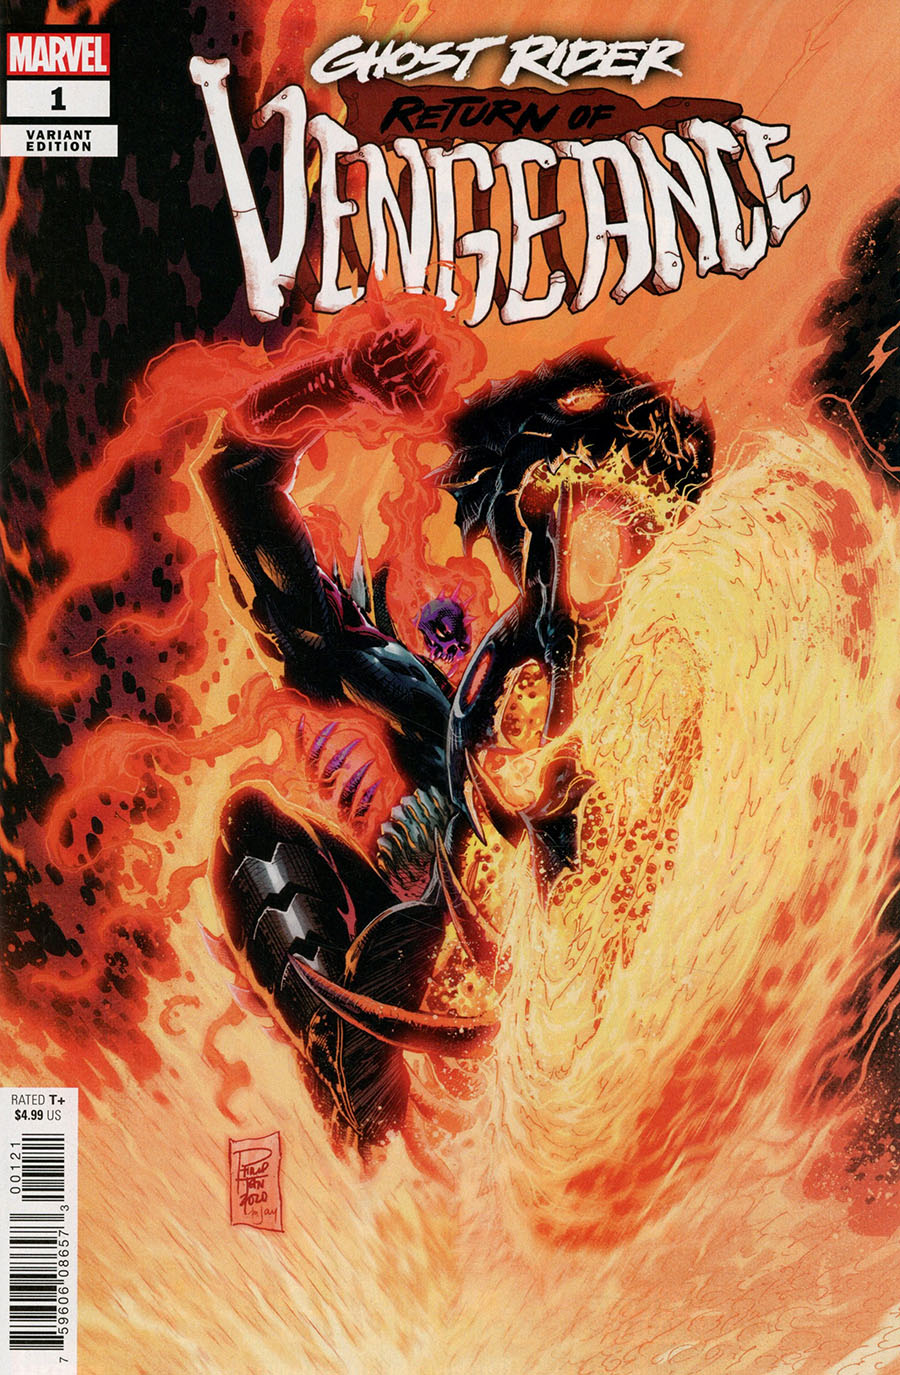 Ghost Rider Return Of Vengeance One Shot Cover C Variant Philip Tan Cover